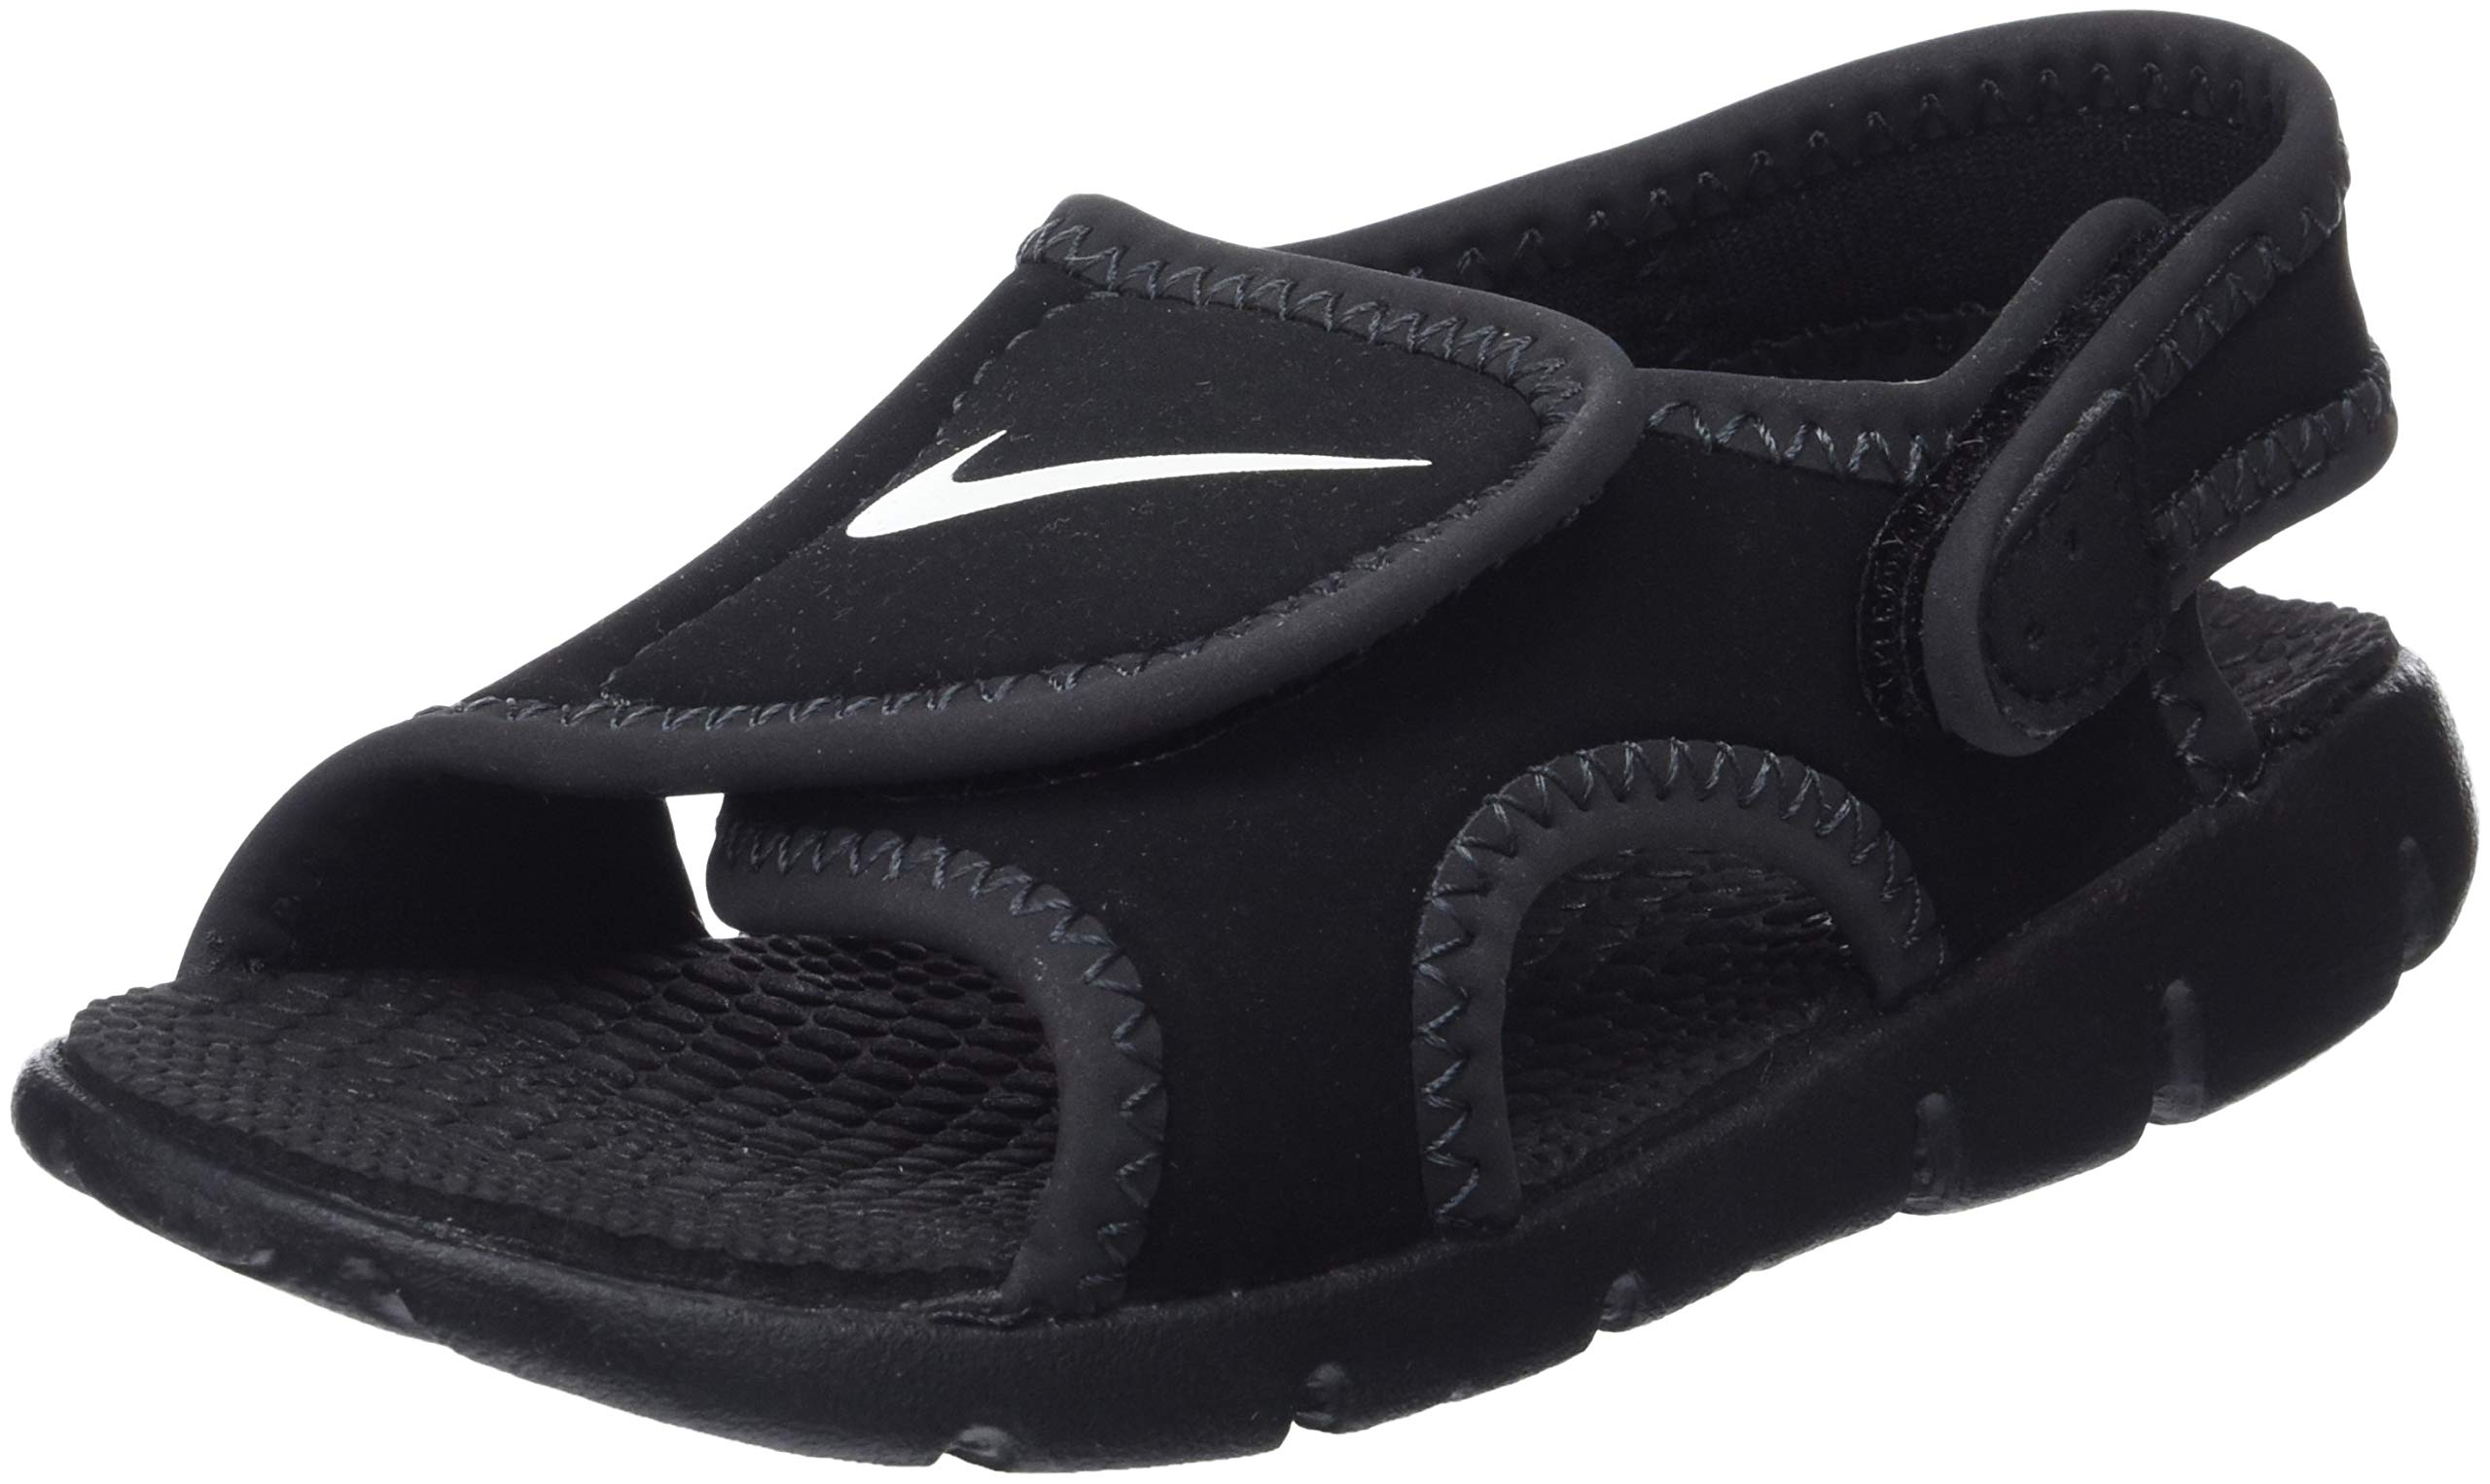 Nike Boy's Sunray Adjust 4 (TD) Toddler Sandal Black/Anthracite/White Size 9 M US